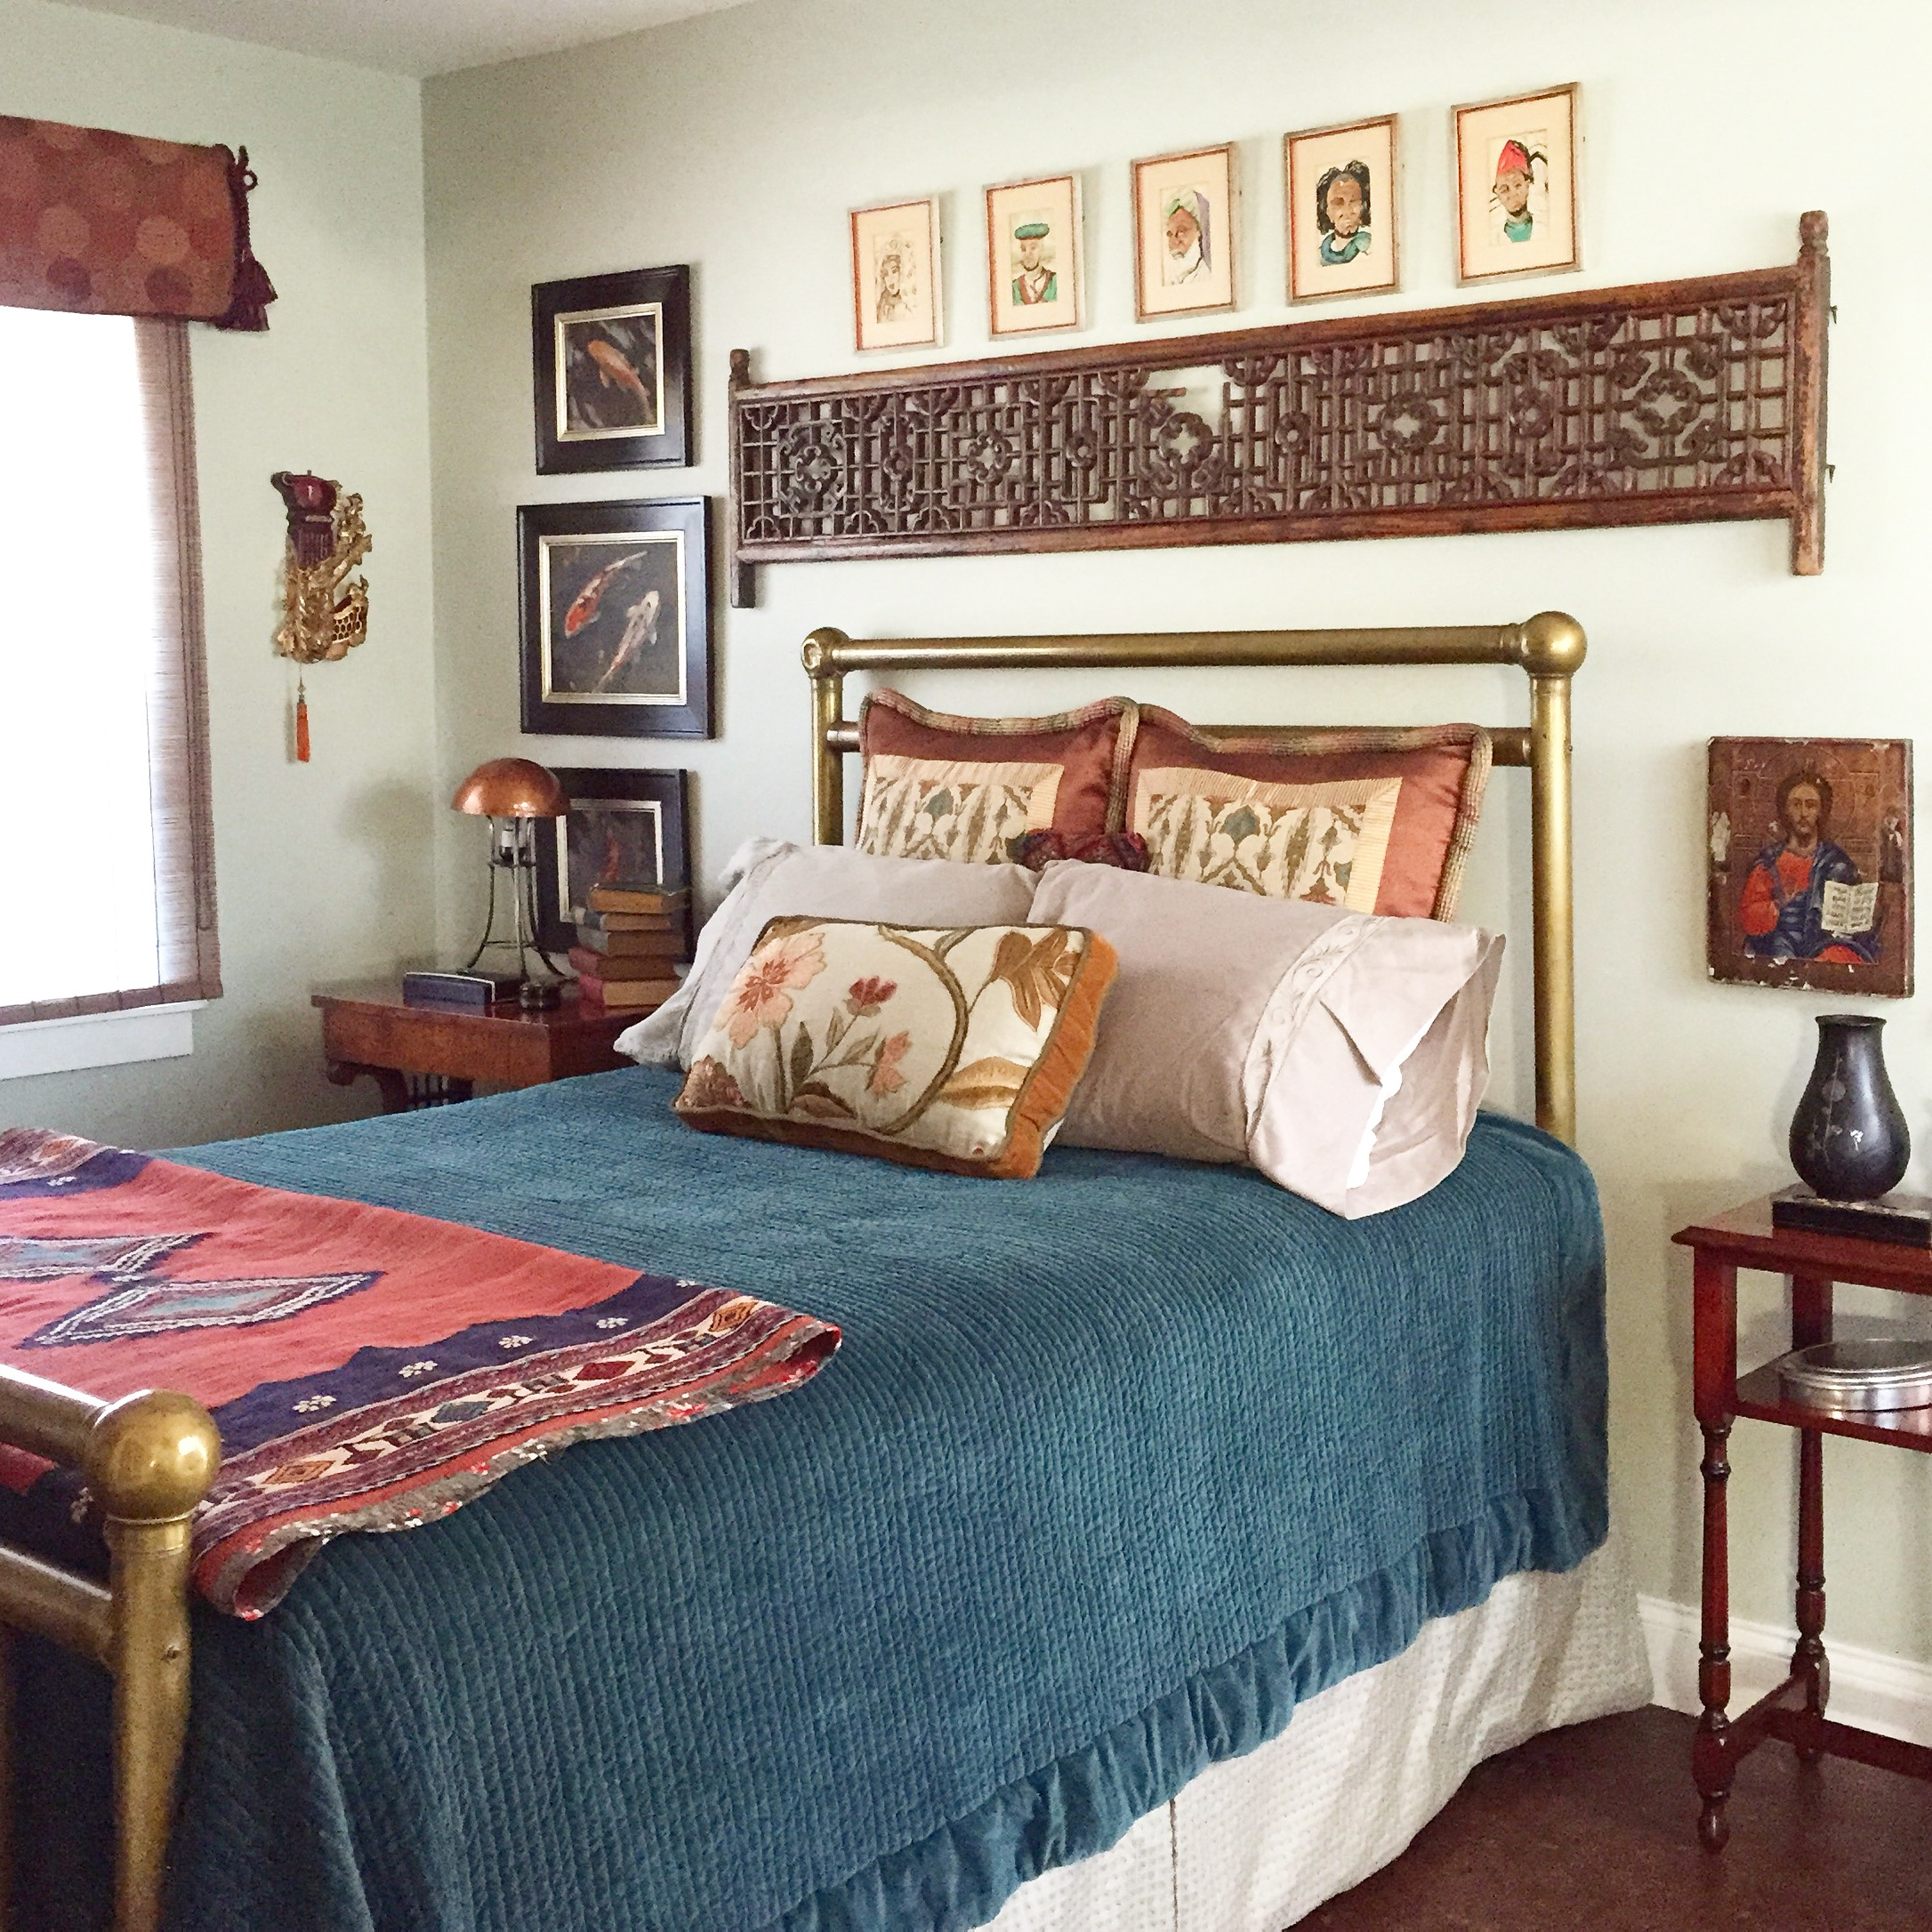 bedroom, eclectic, traveled bedroom, dunn edwards, antiques, design, interior design, collectibles, pottery barn bedding